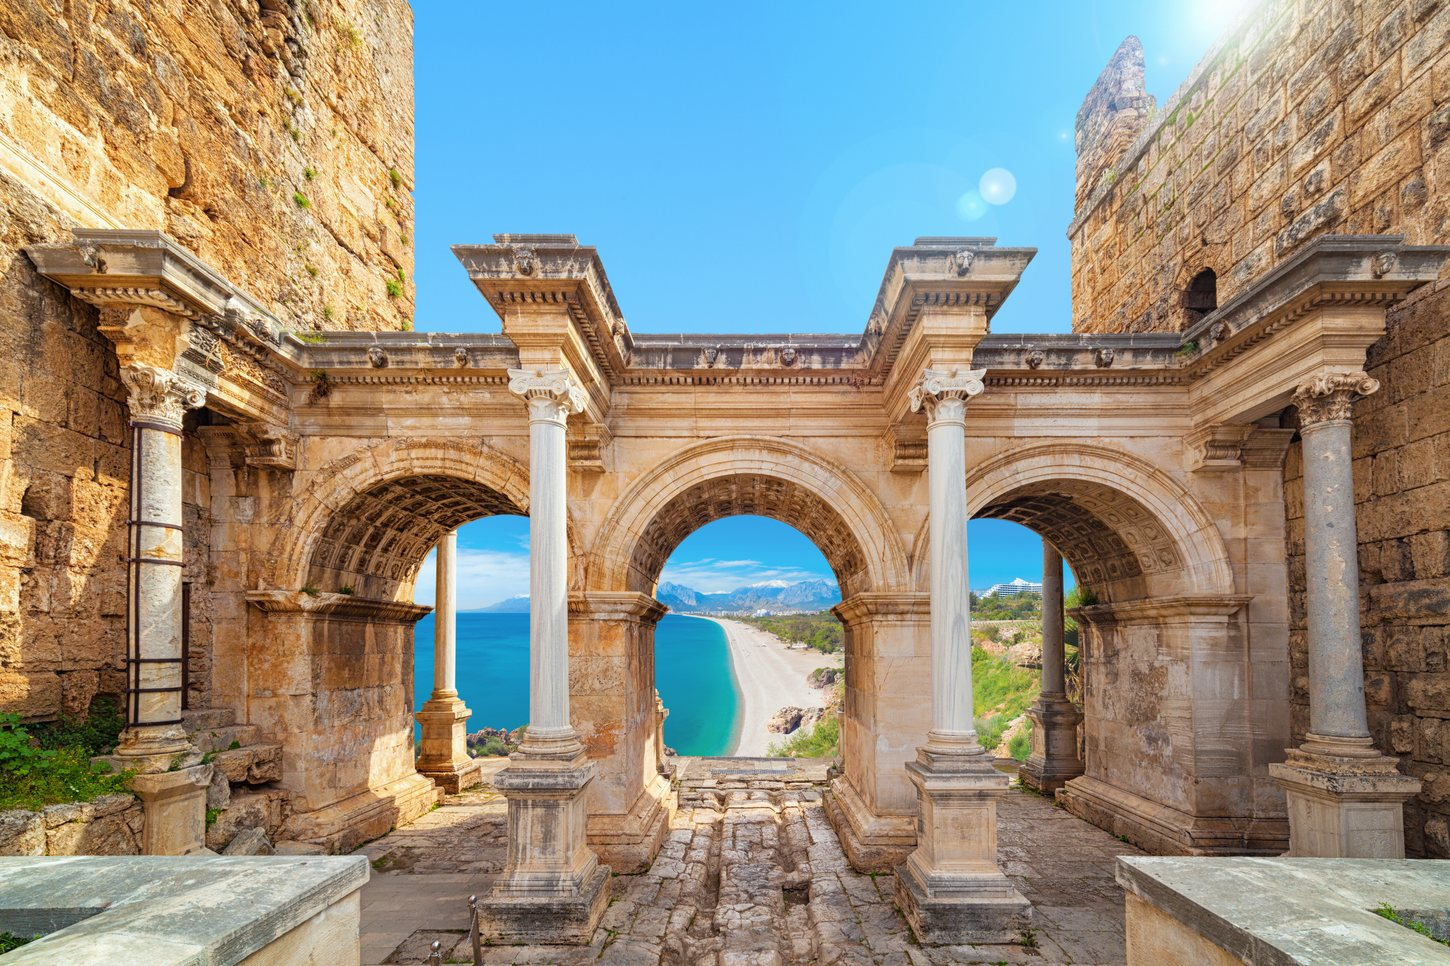 Things to see & do in Turkey